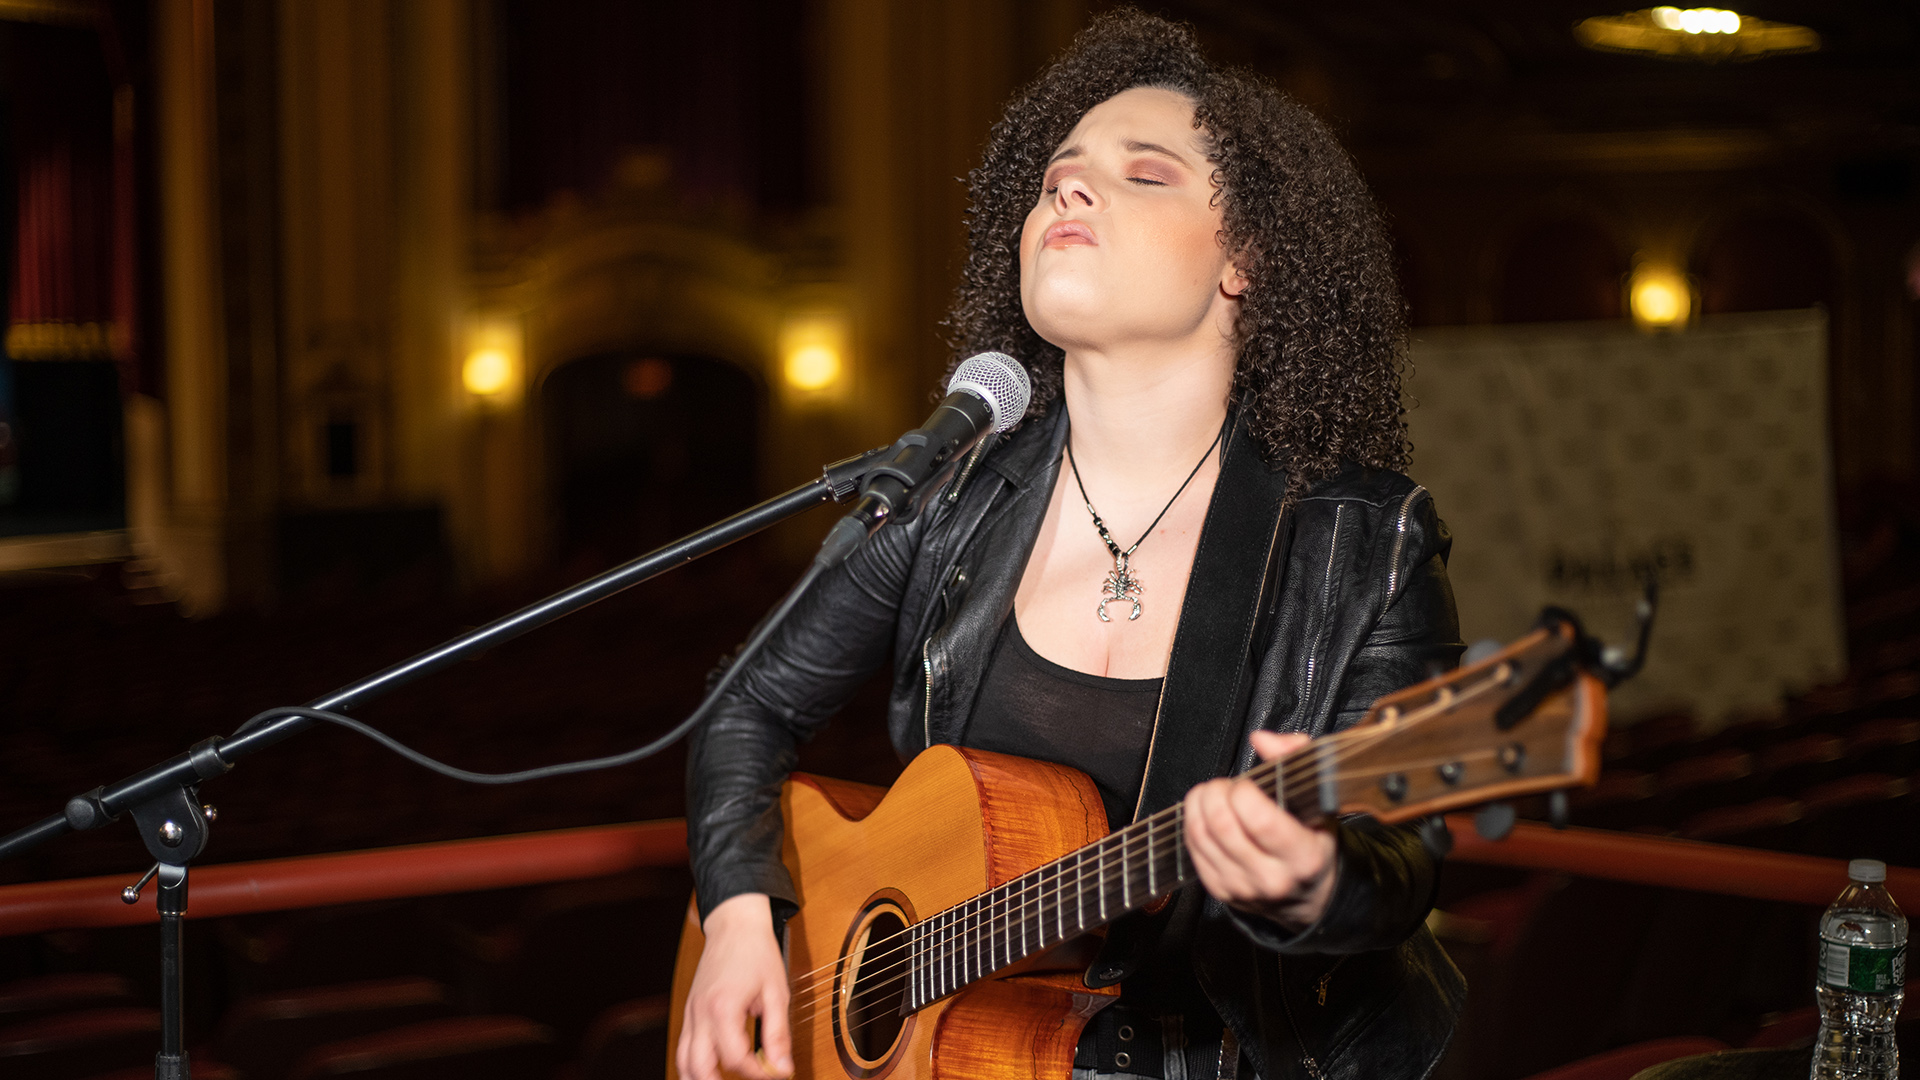 """VIDEO: Moriah Formica Performs """"I Will"""" Live at the Palace Theatre in Albany, NY"""